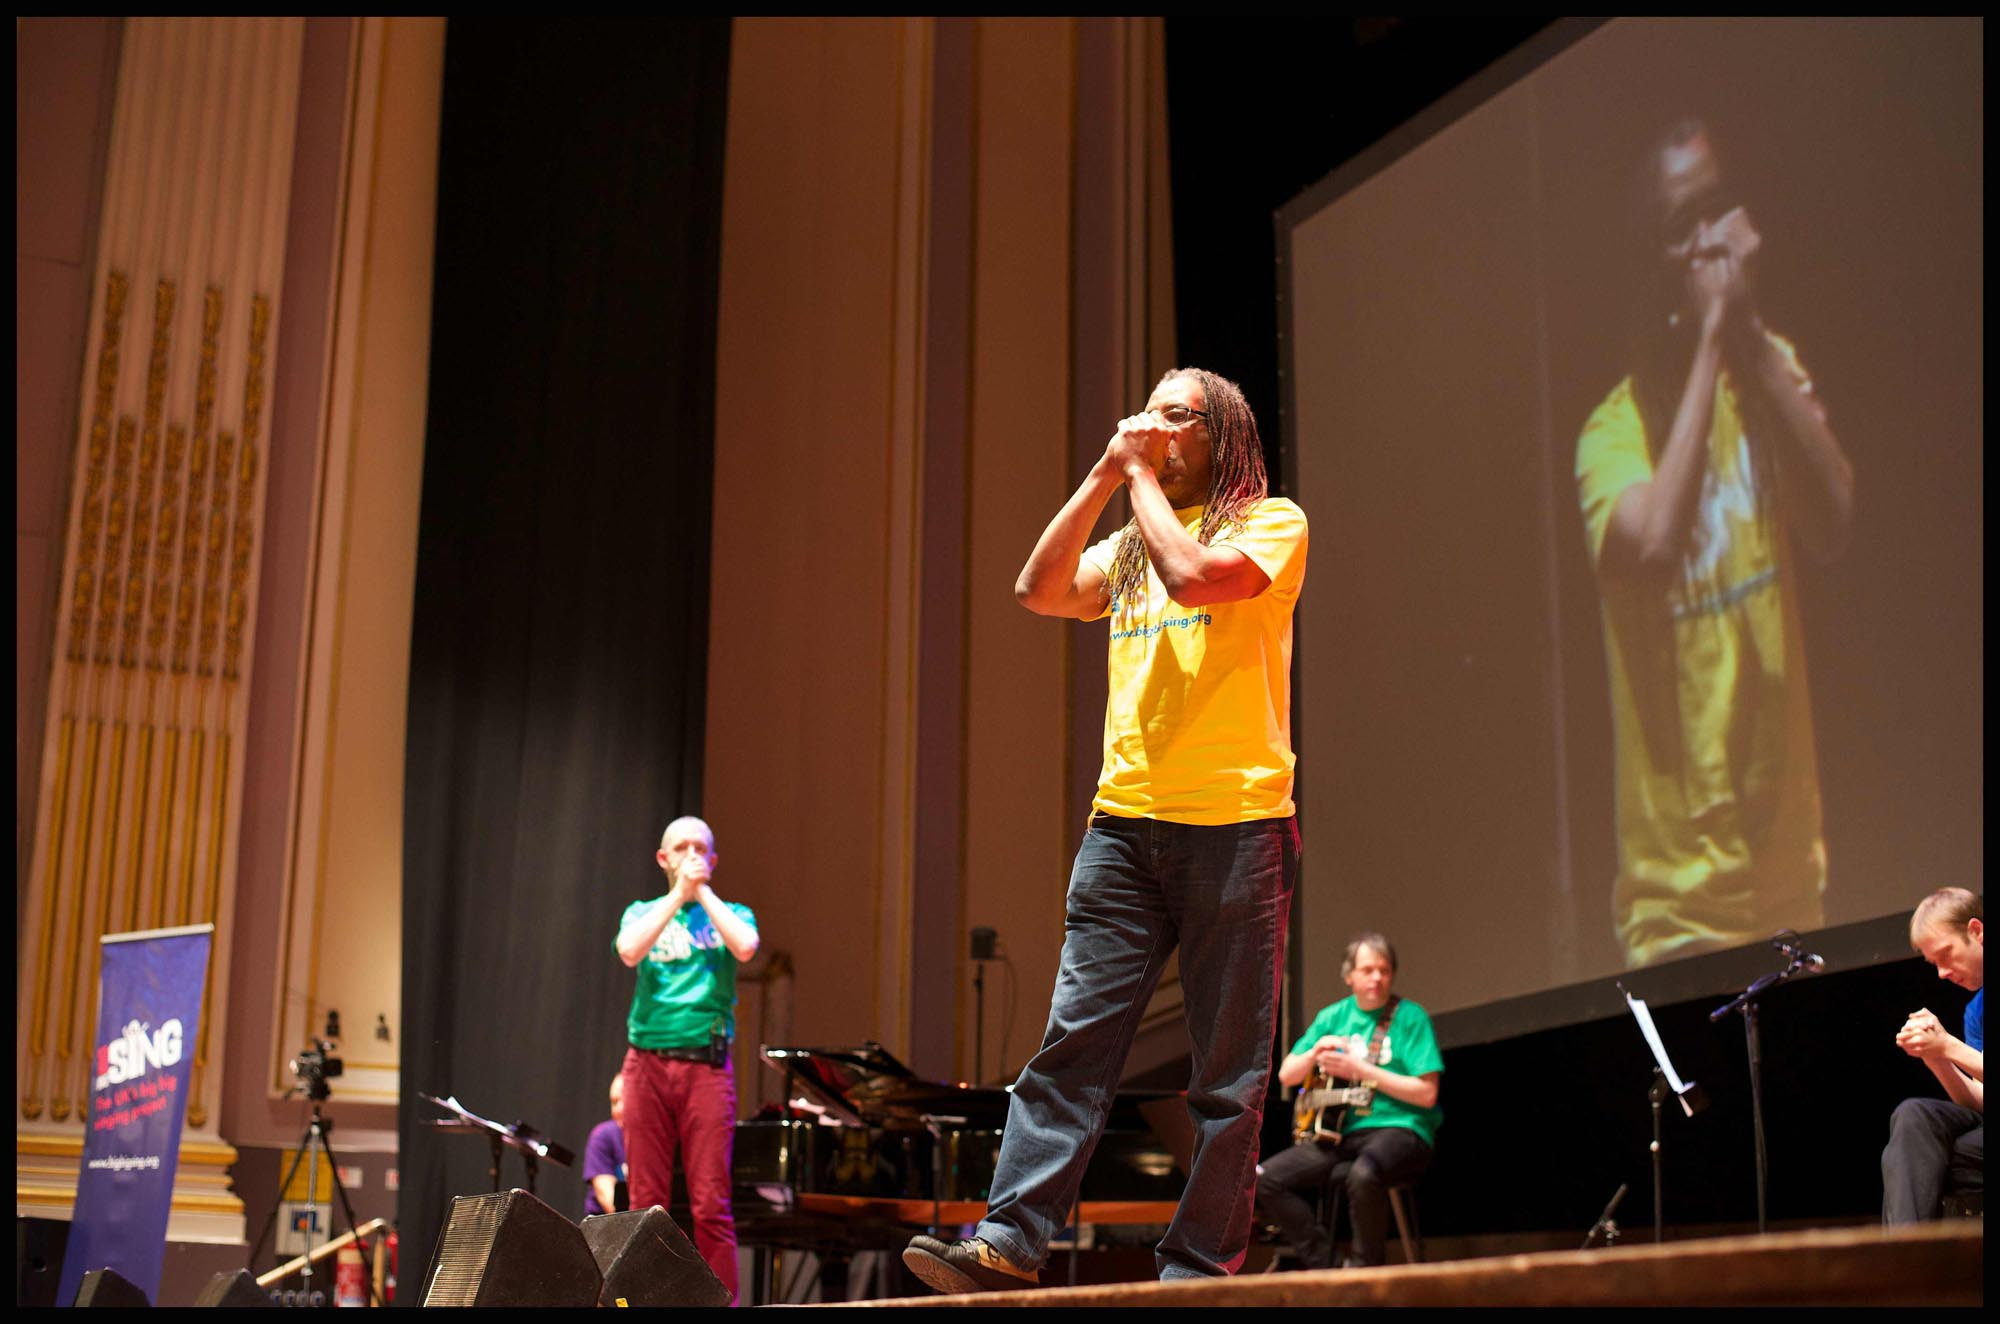 BIG BIG SING DAY – SOUTHBANK CENTRE, LONDON